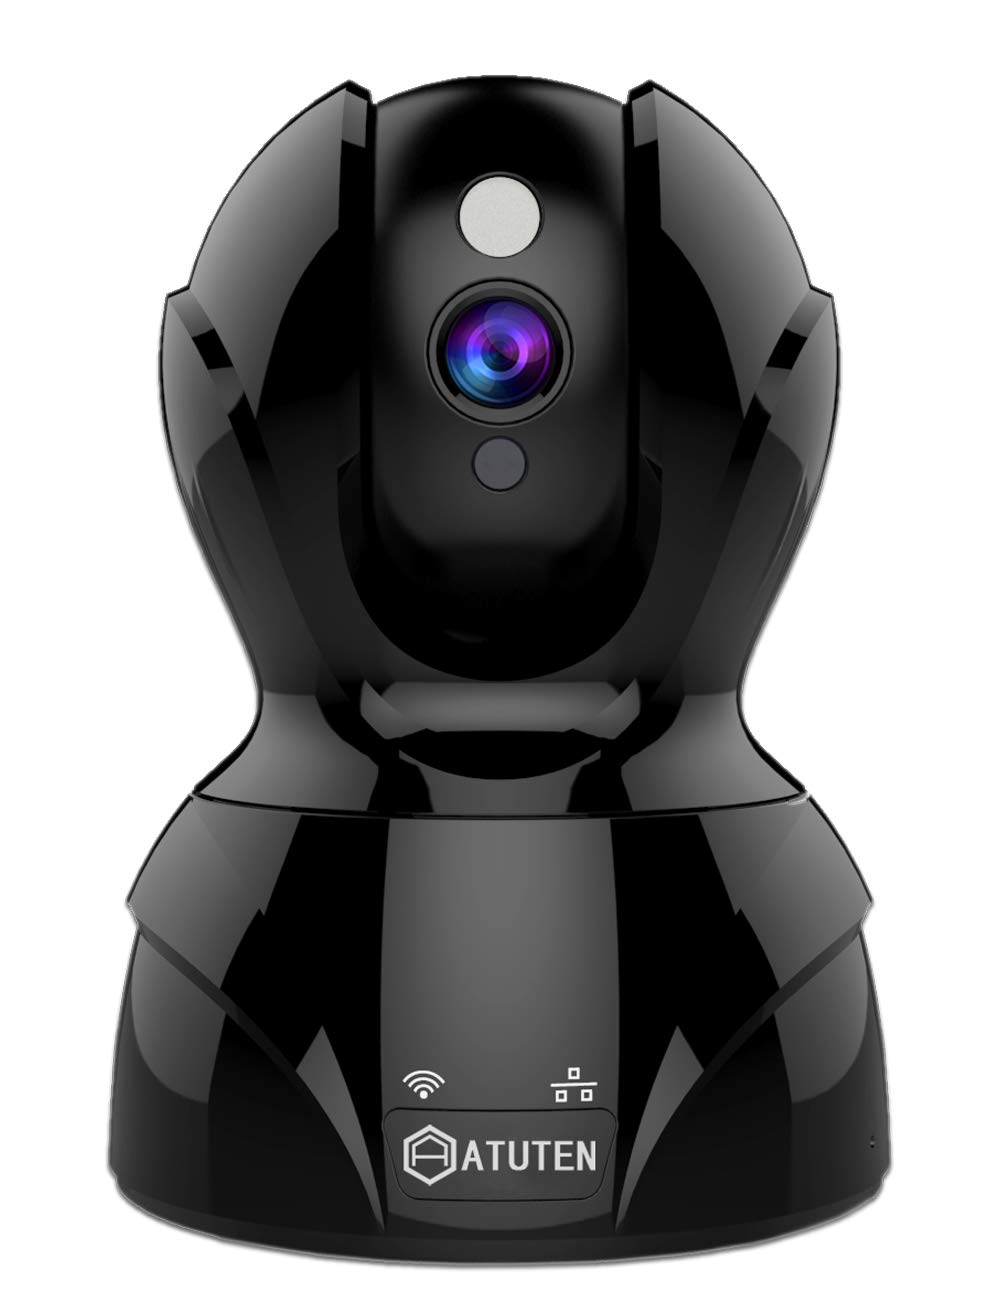 IP Camera, 1536P WiFi Camera Compatible with Alexa Echo Show, Atuten Wireless Smart Security Camera, Motion Detection, IR Night Vision, 2 Way Audio, Email Alarm, Pan/Tilt/Zoom Monitor, Support iOS Android PC